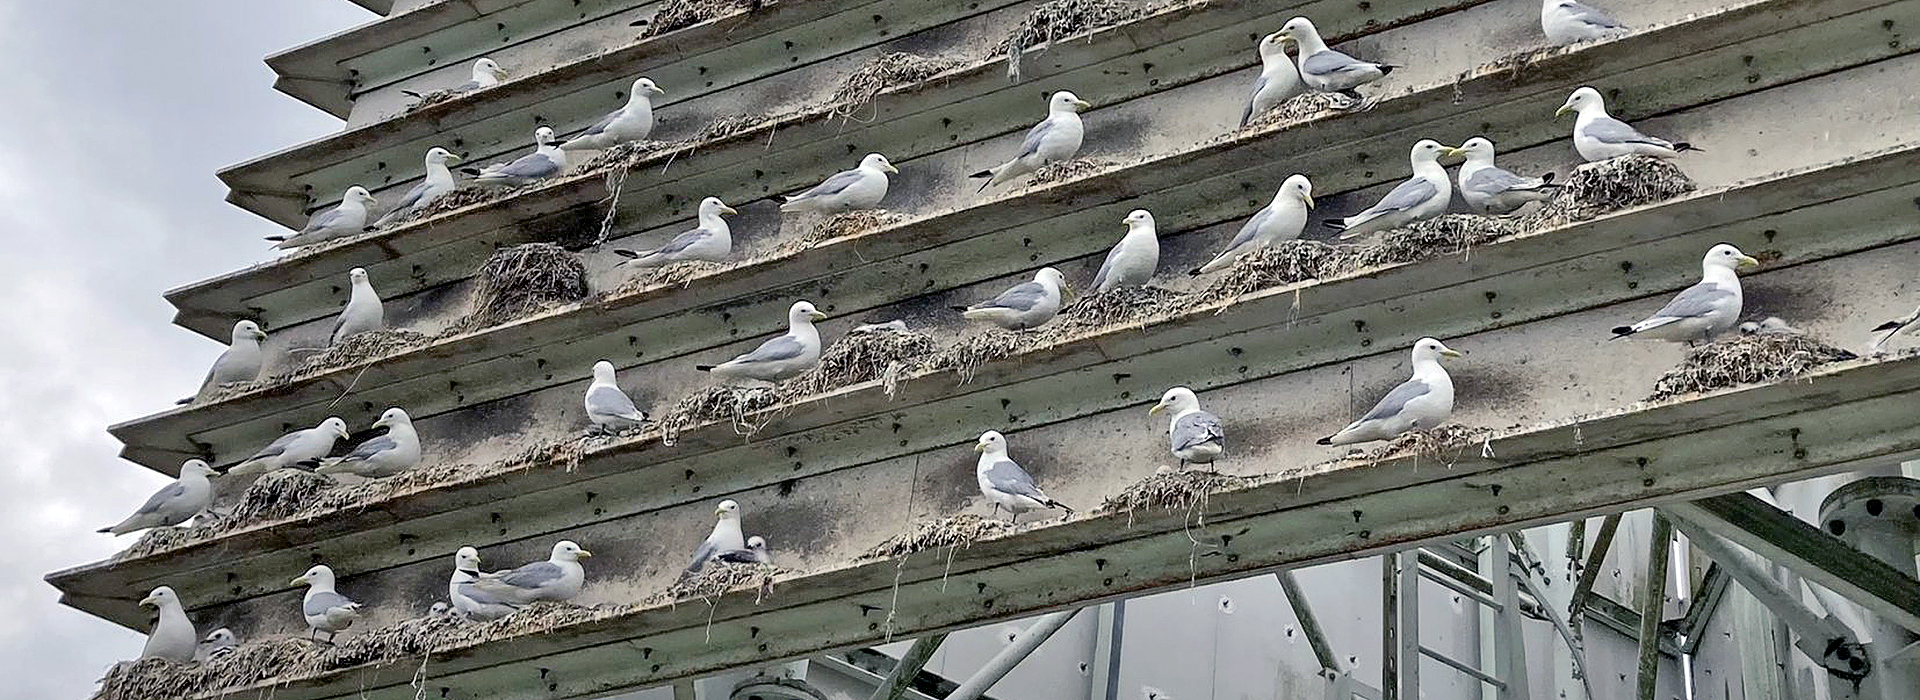 Kittiwakes on the Tower by Andy Rickeard